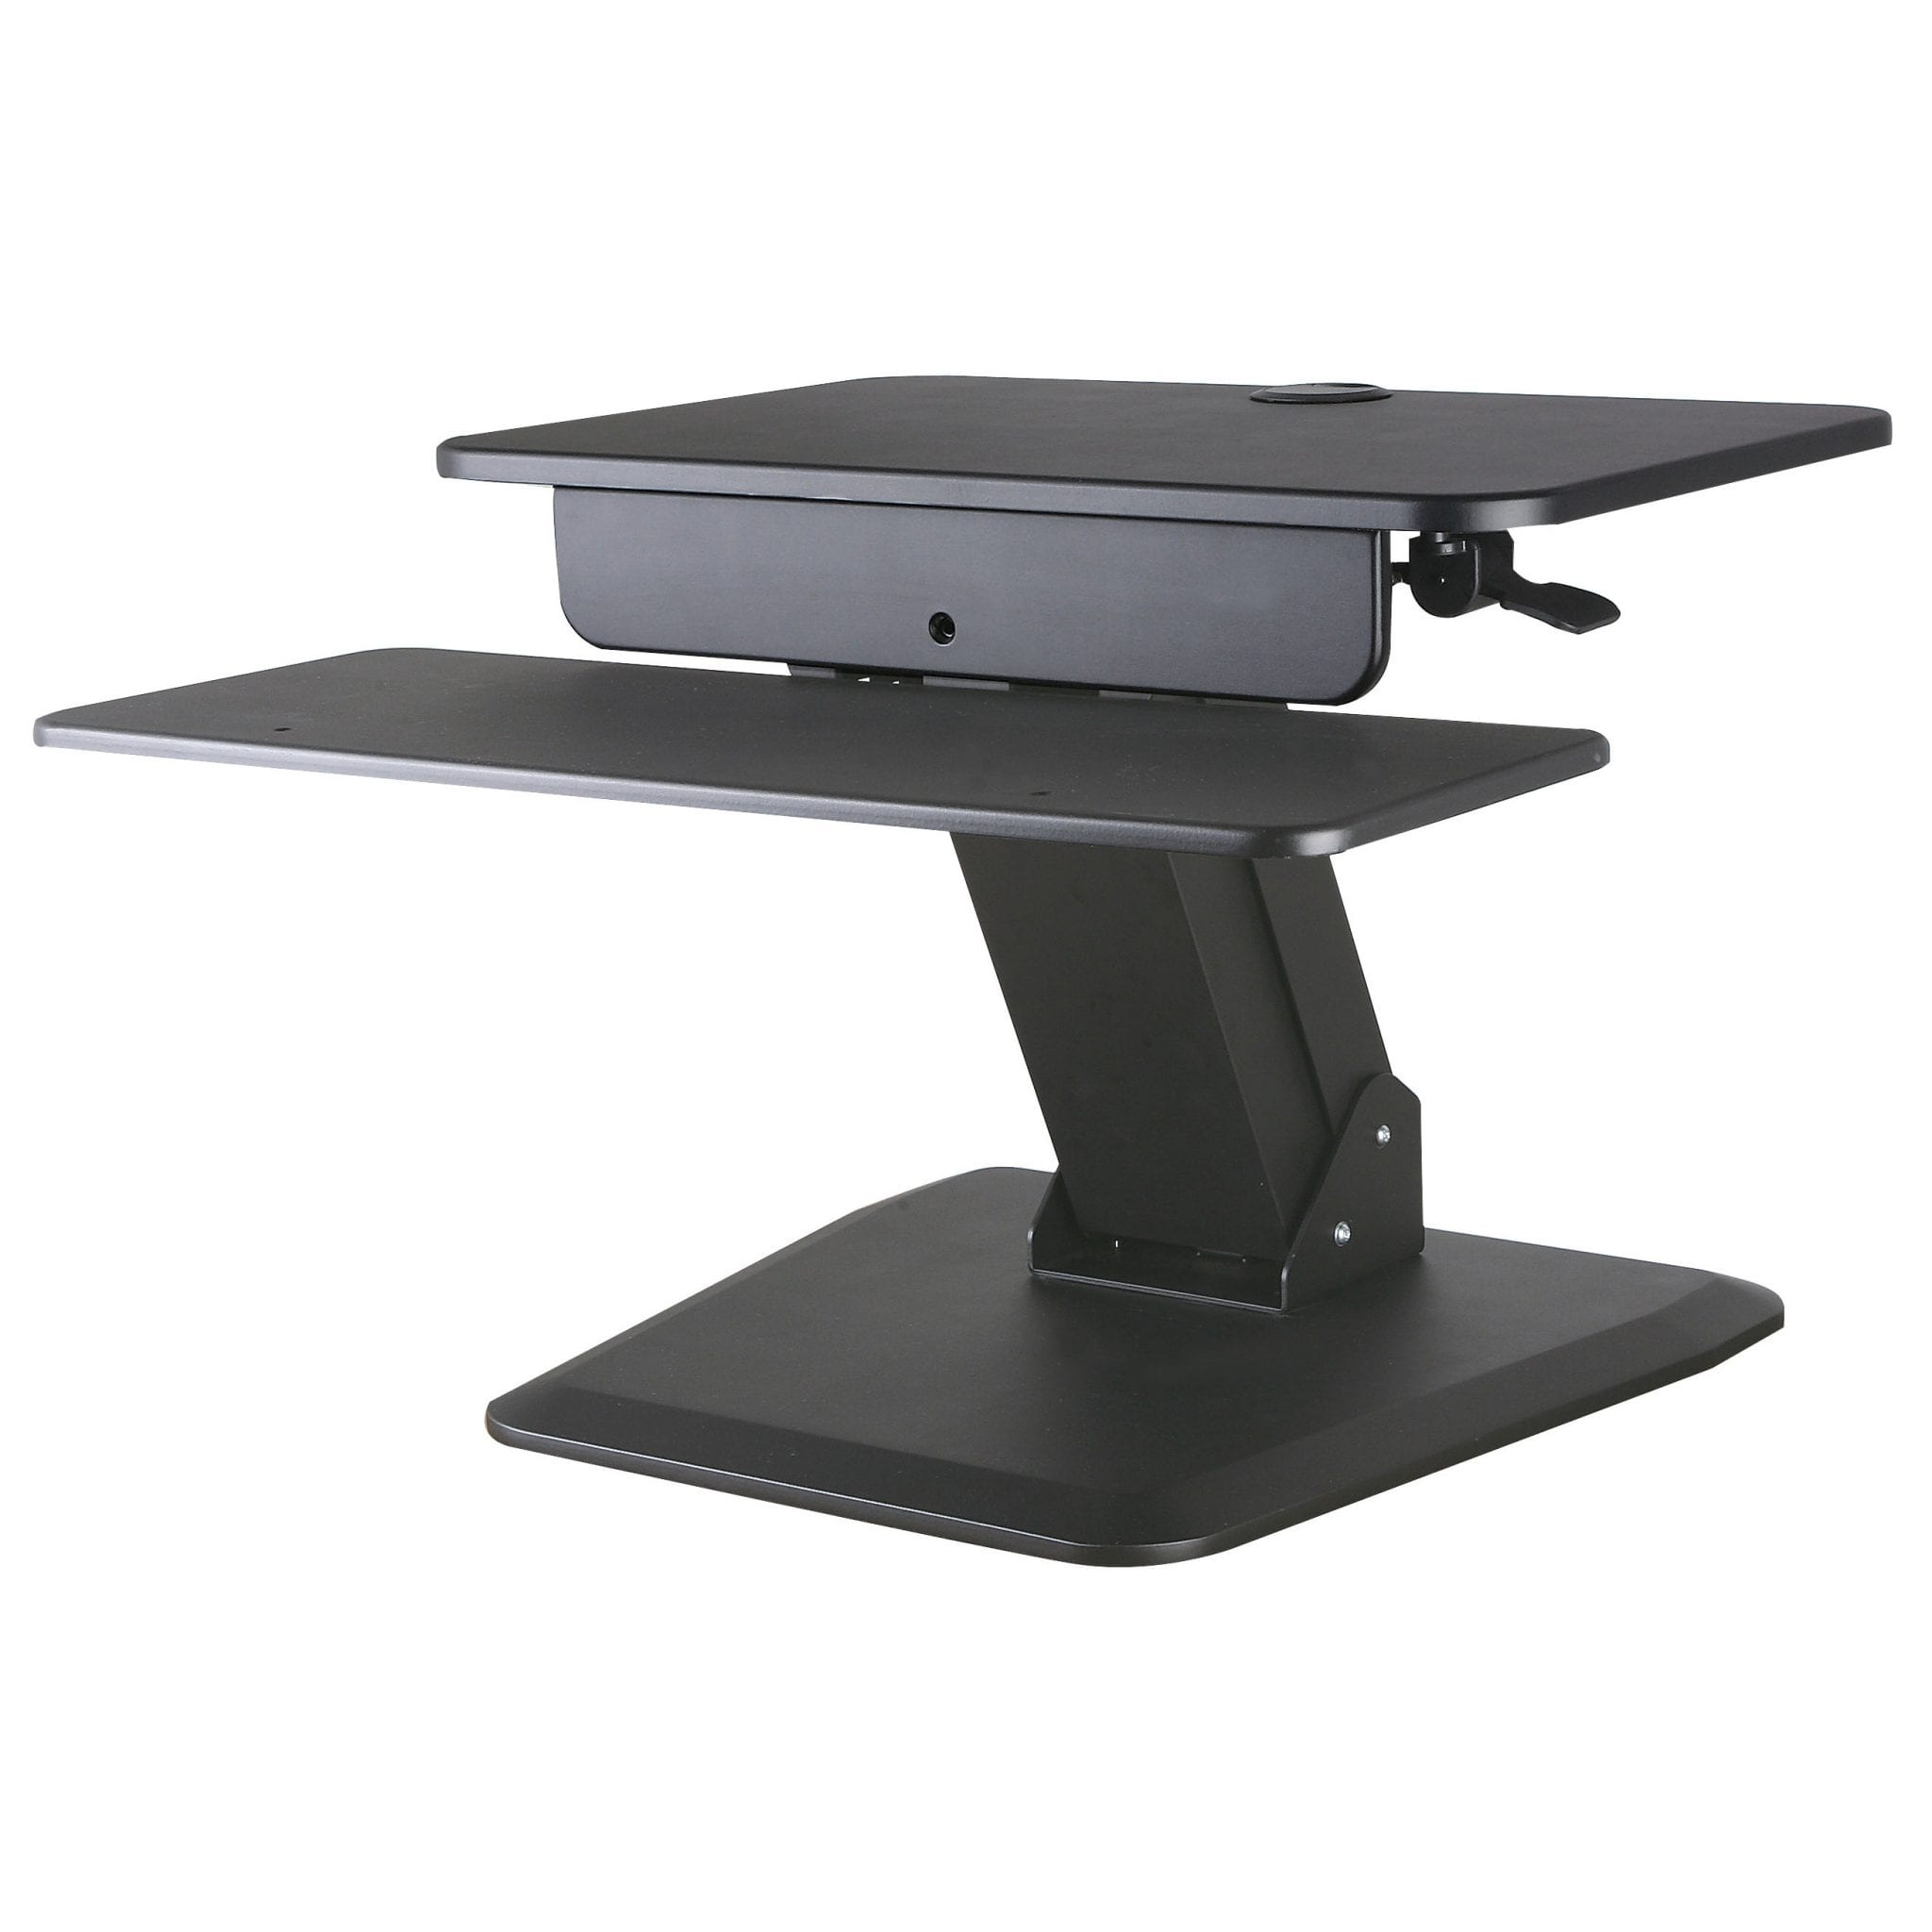 ACAVA GSS03BAS Sit-Stand Workstation for Lower Back Pain Relief due to Prolonged Sitting Hours